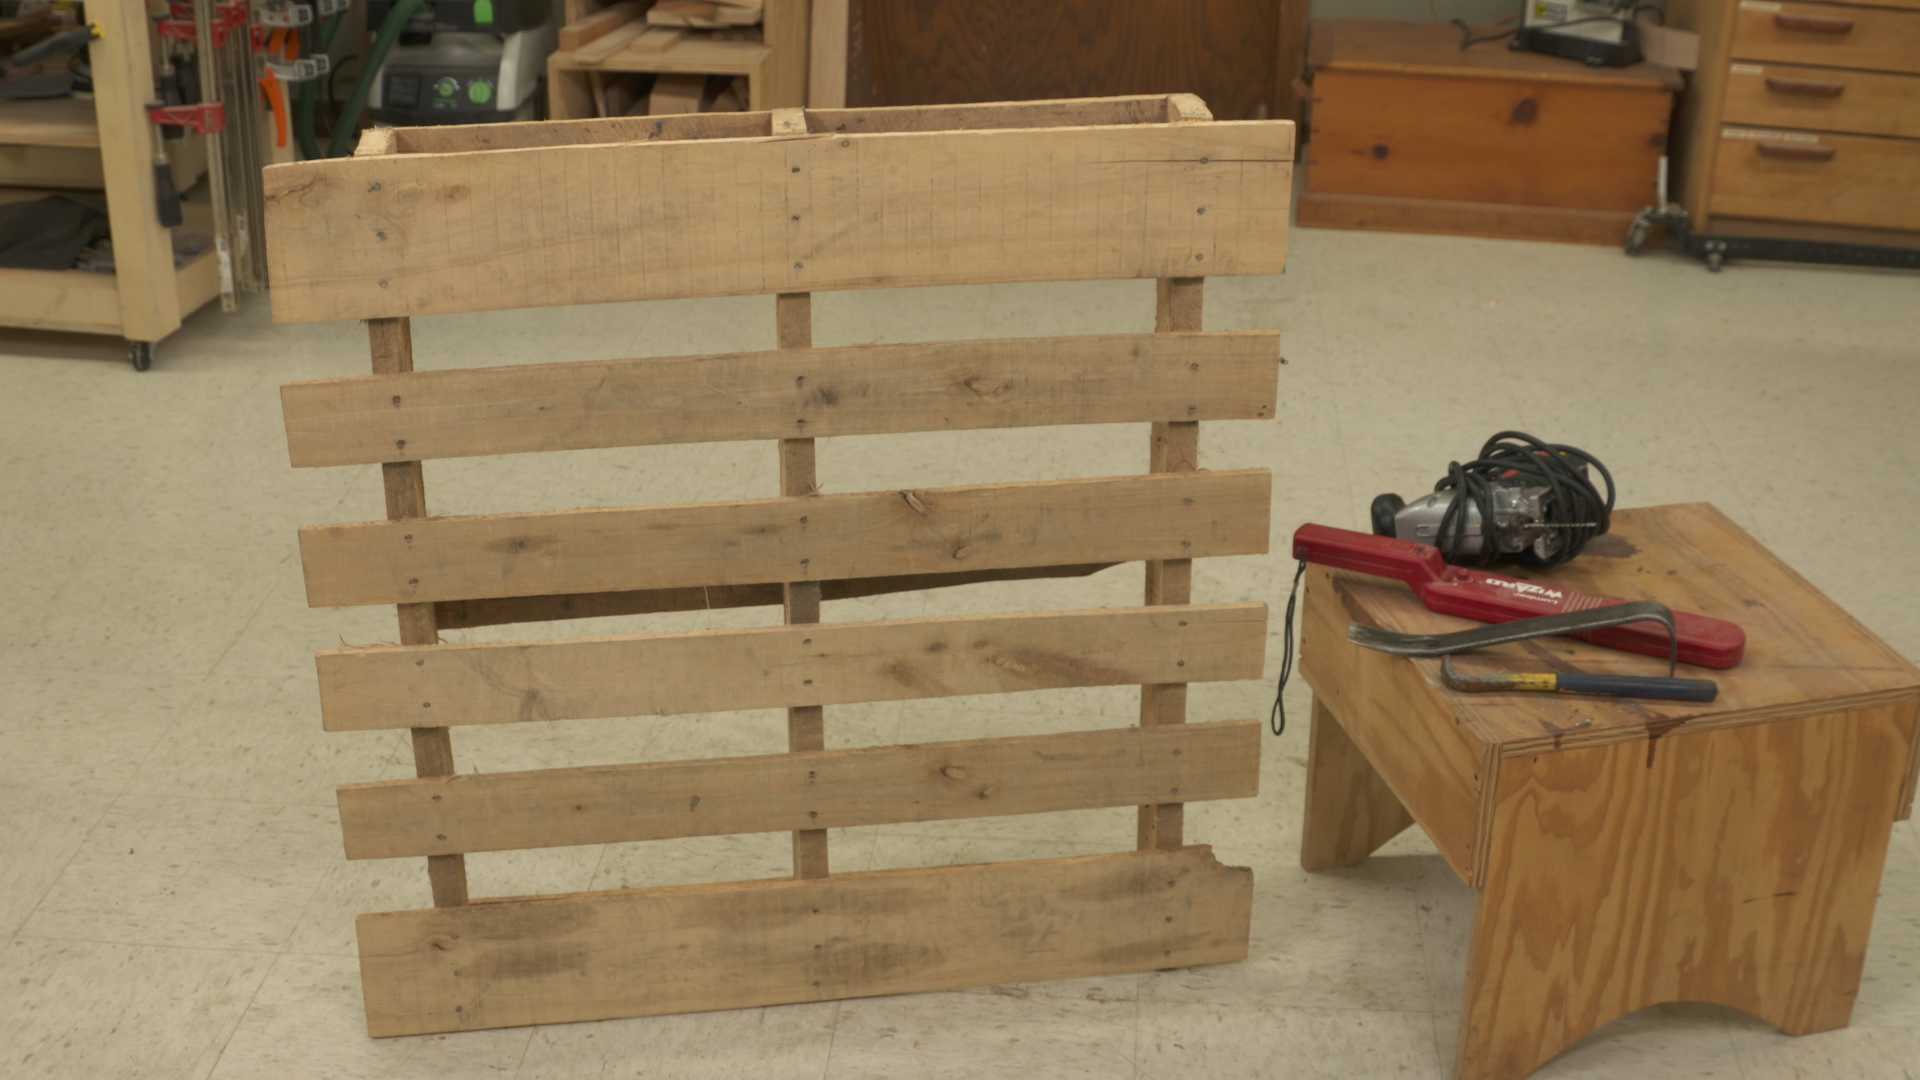 Working with pallet wood